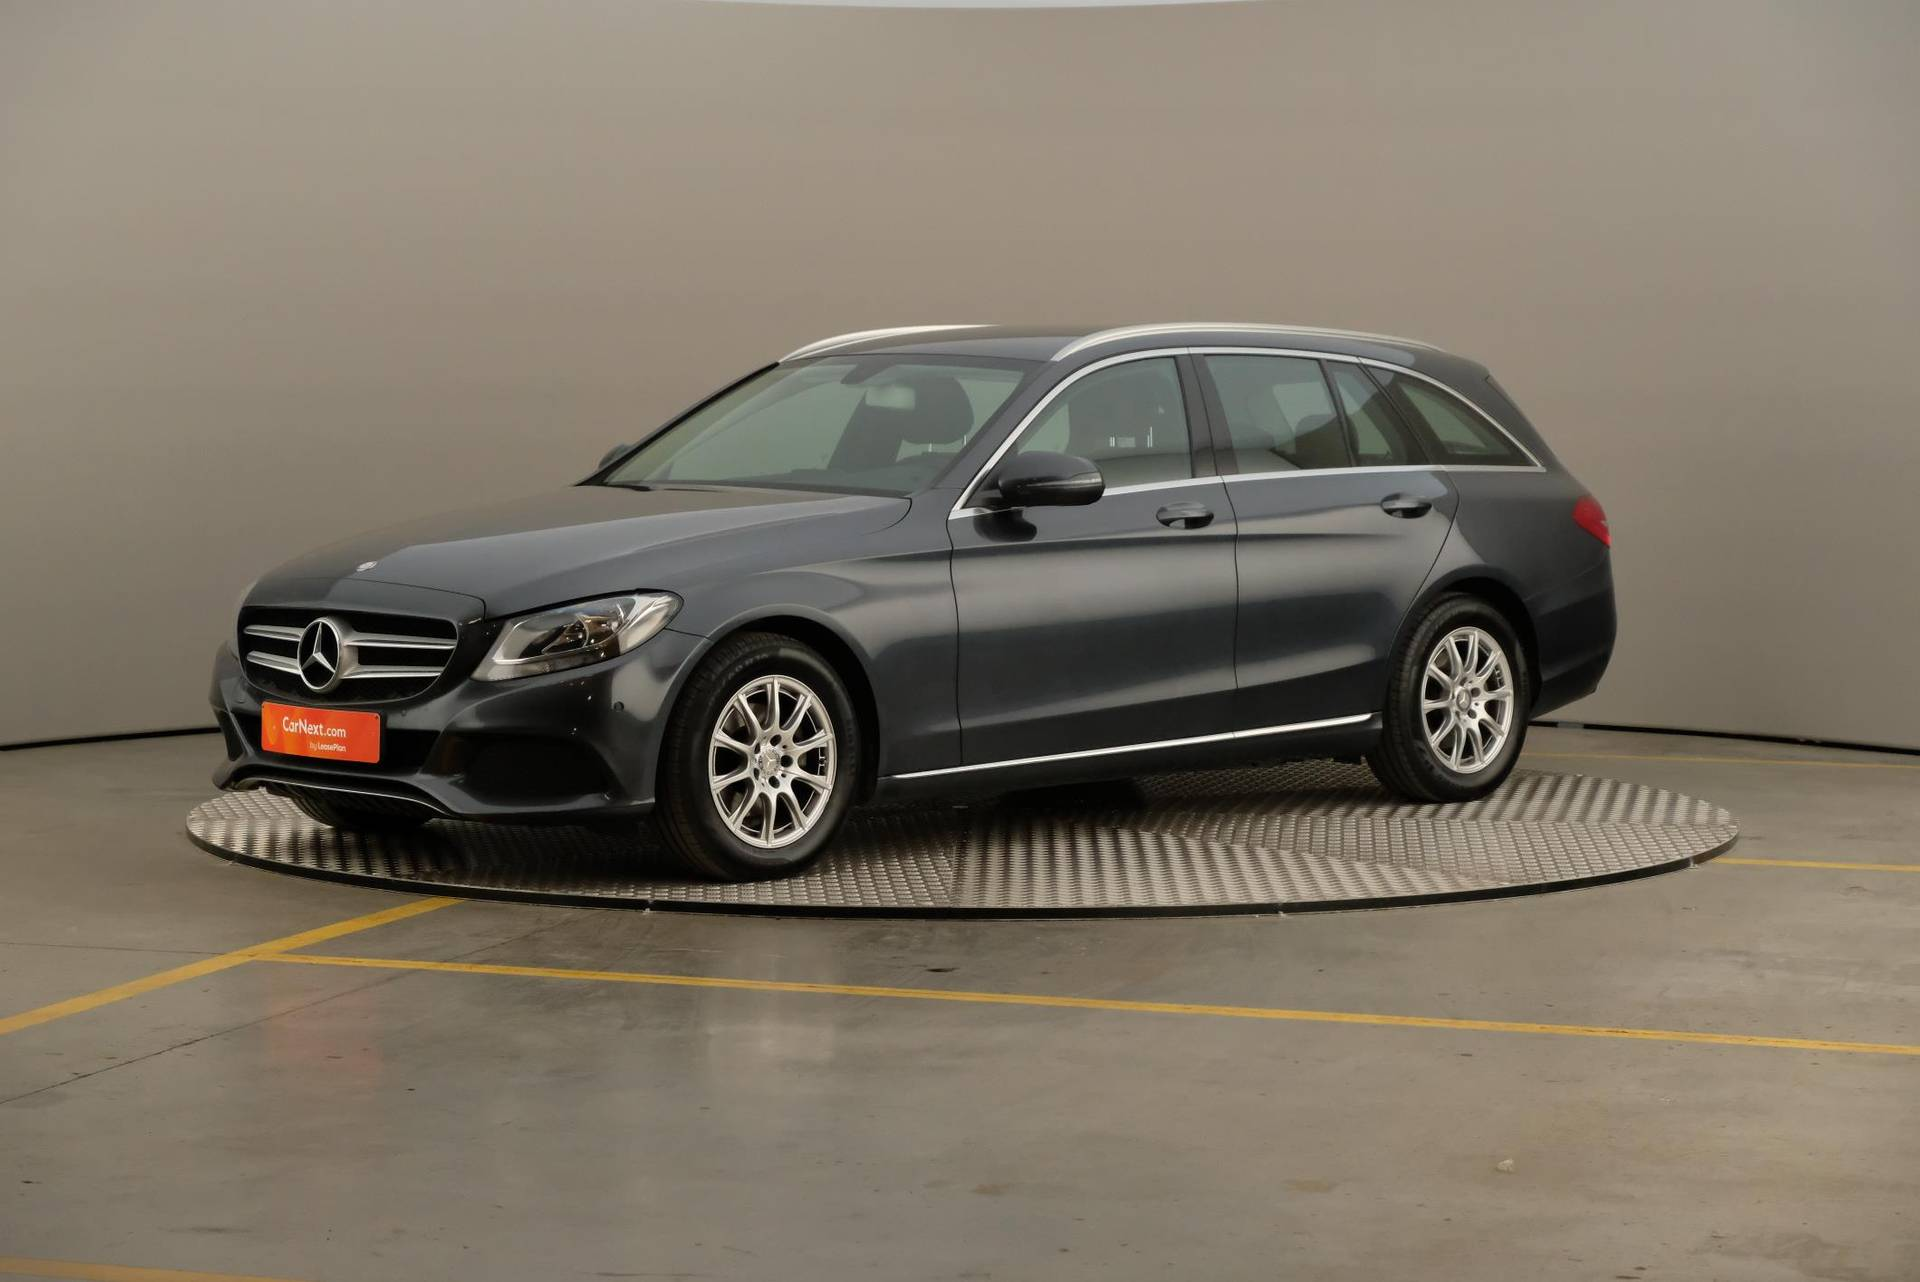 Mercedes-Benz C-Klasse 180 d PACK AVANTGARDE PACK EASY GPS PDC TREKHAAK EURO 6.., 360-image0